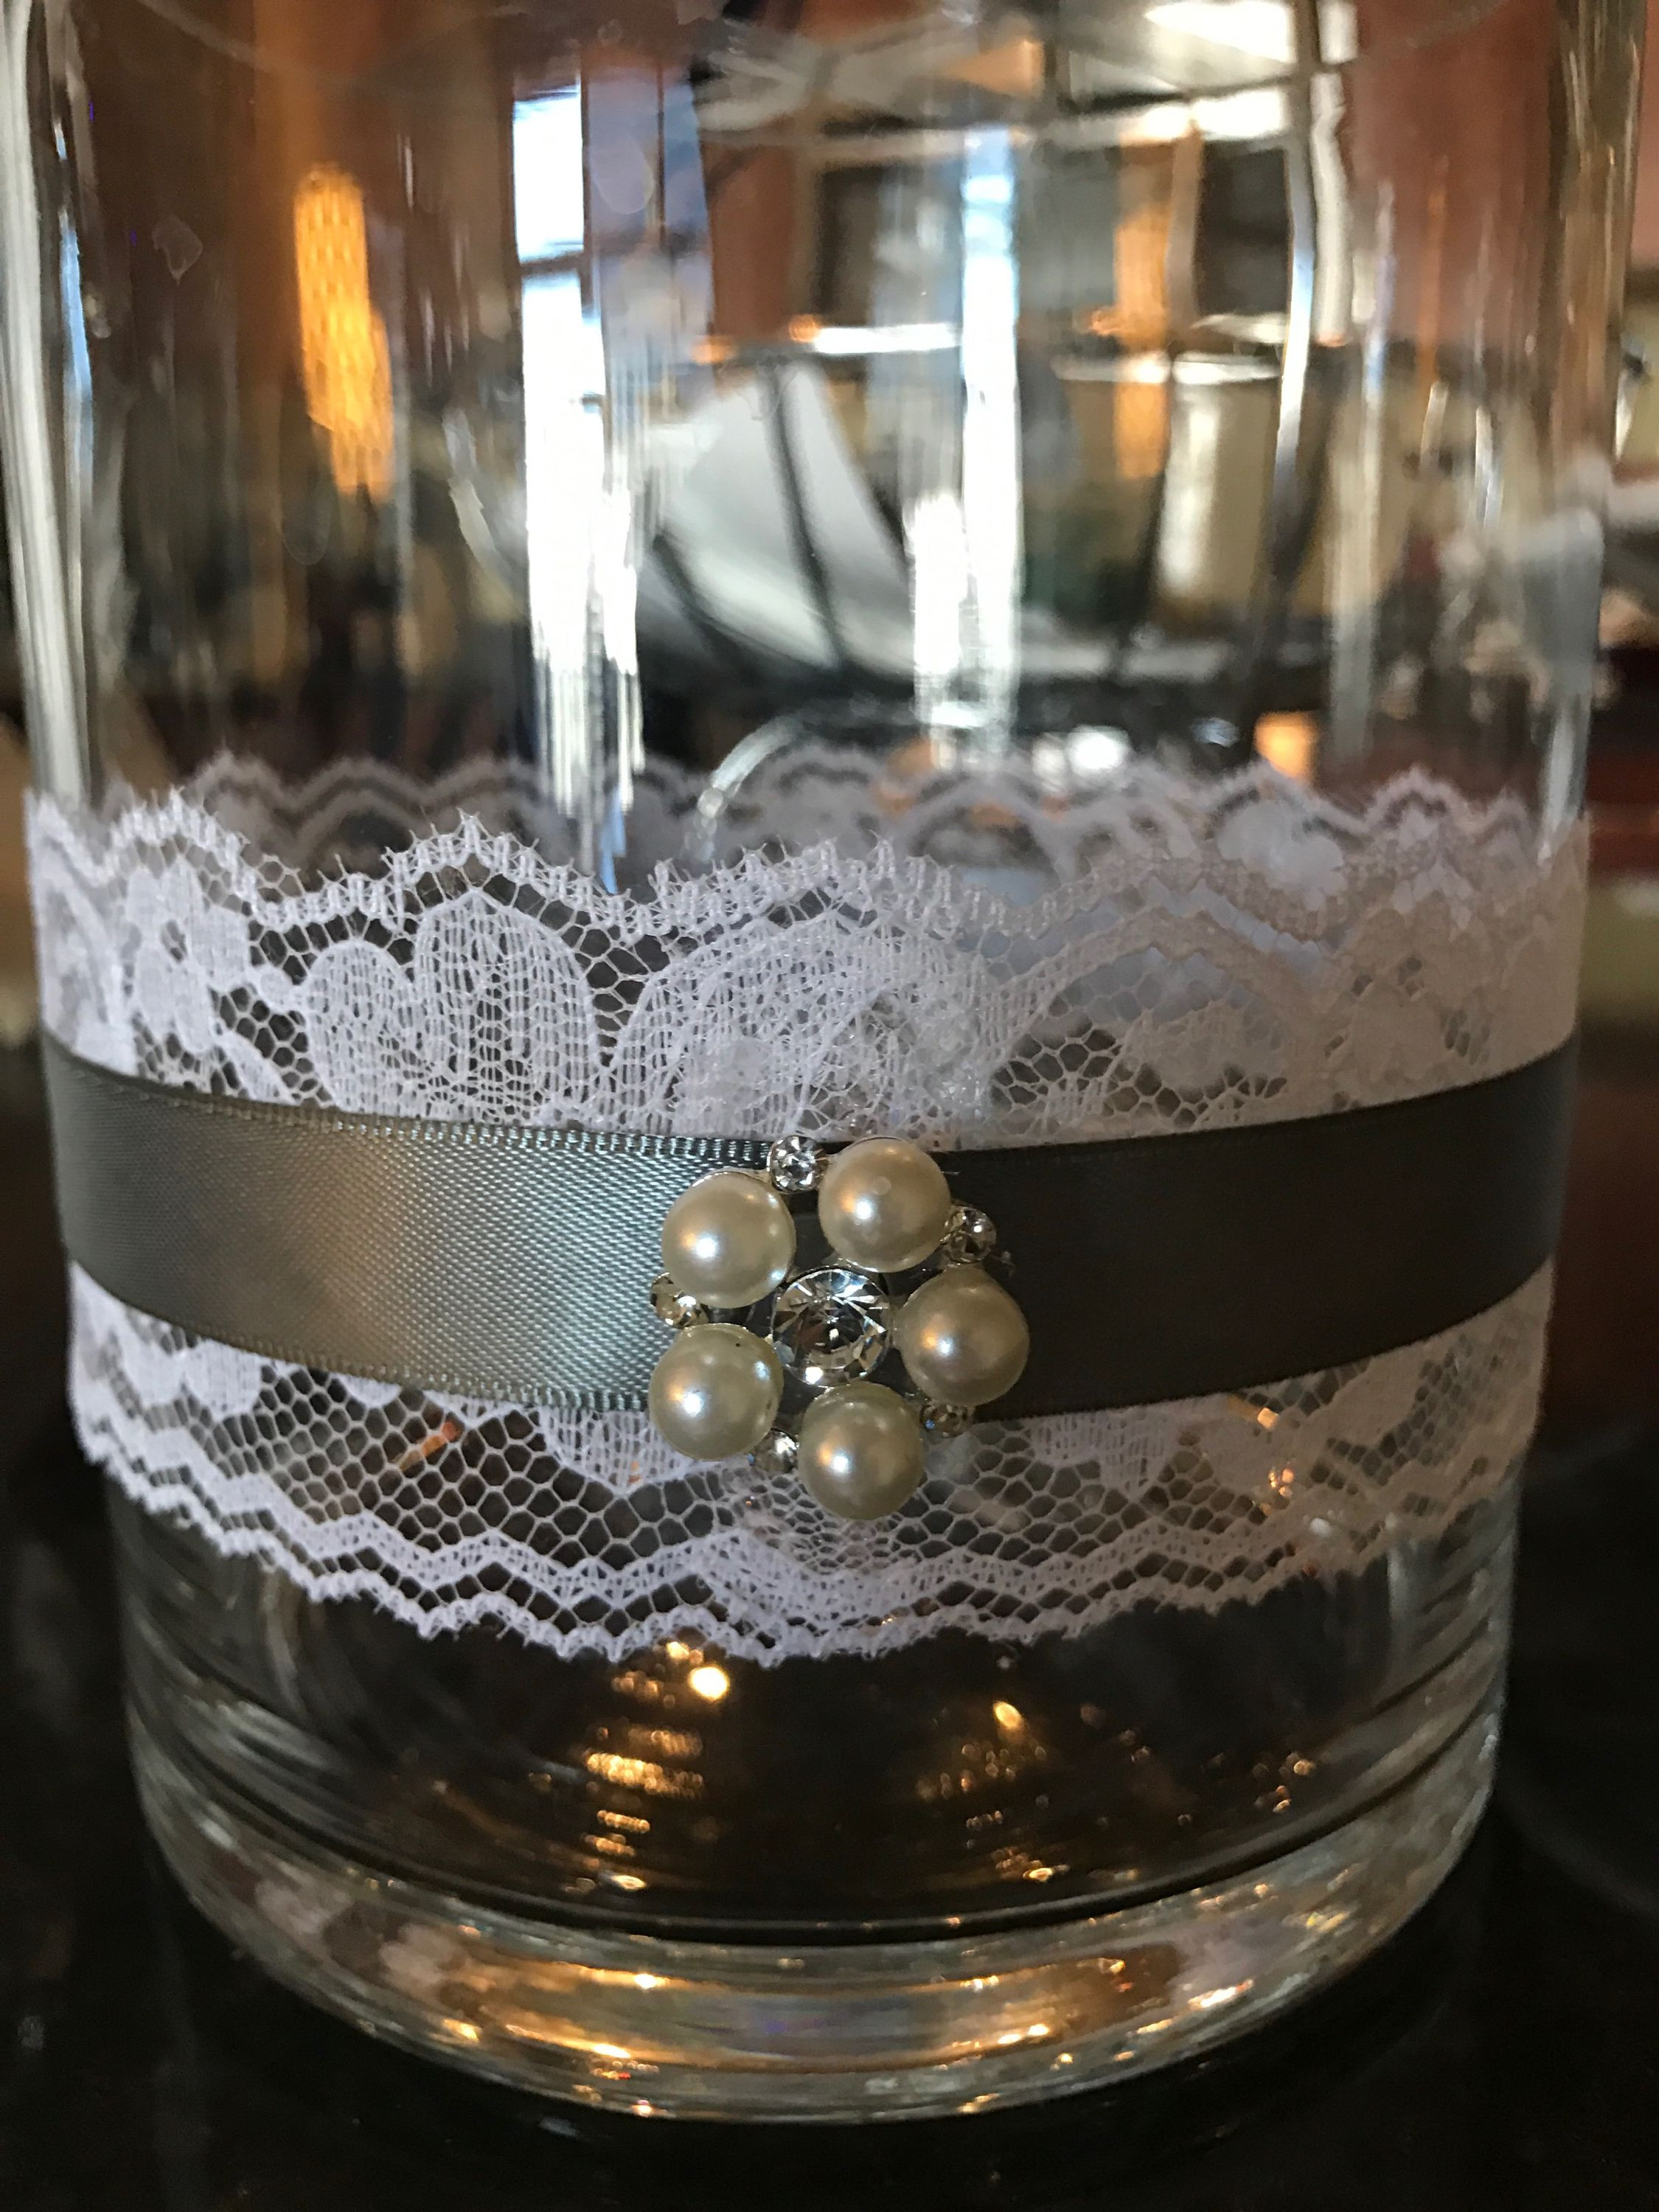 16 inch vase centerpieces of lace grey ribbon pearls and crystal vase for wedding centerpiece pertaining to lace grey ribbon pearls and crystal vase for wedding centerpiece